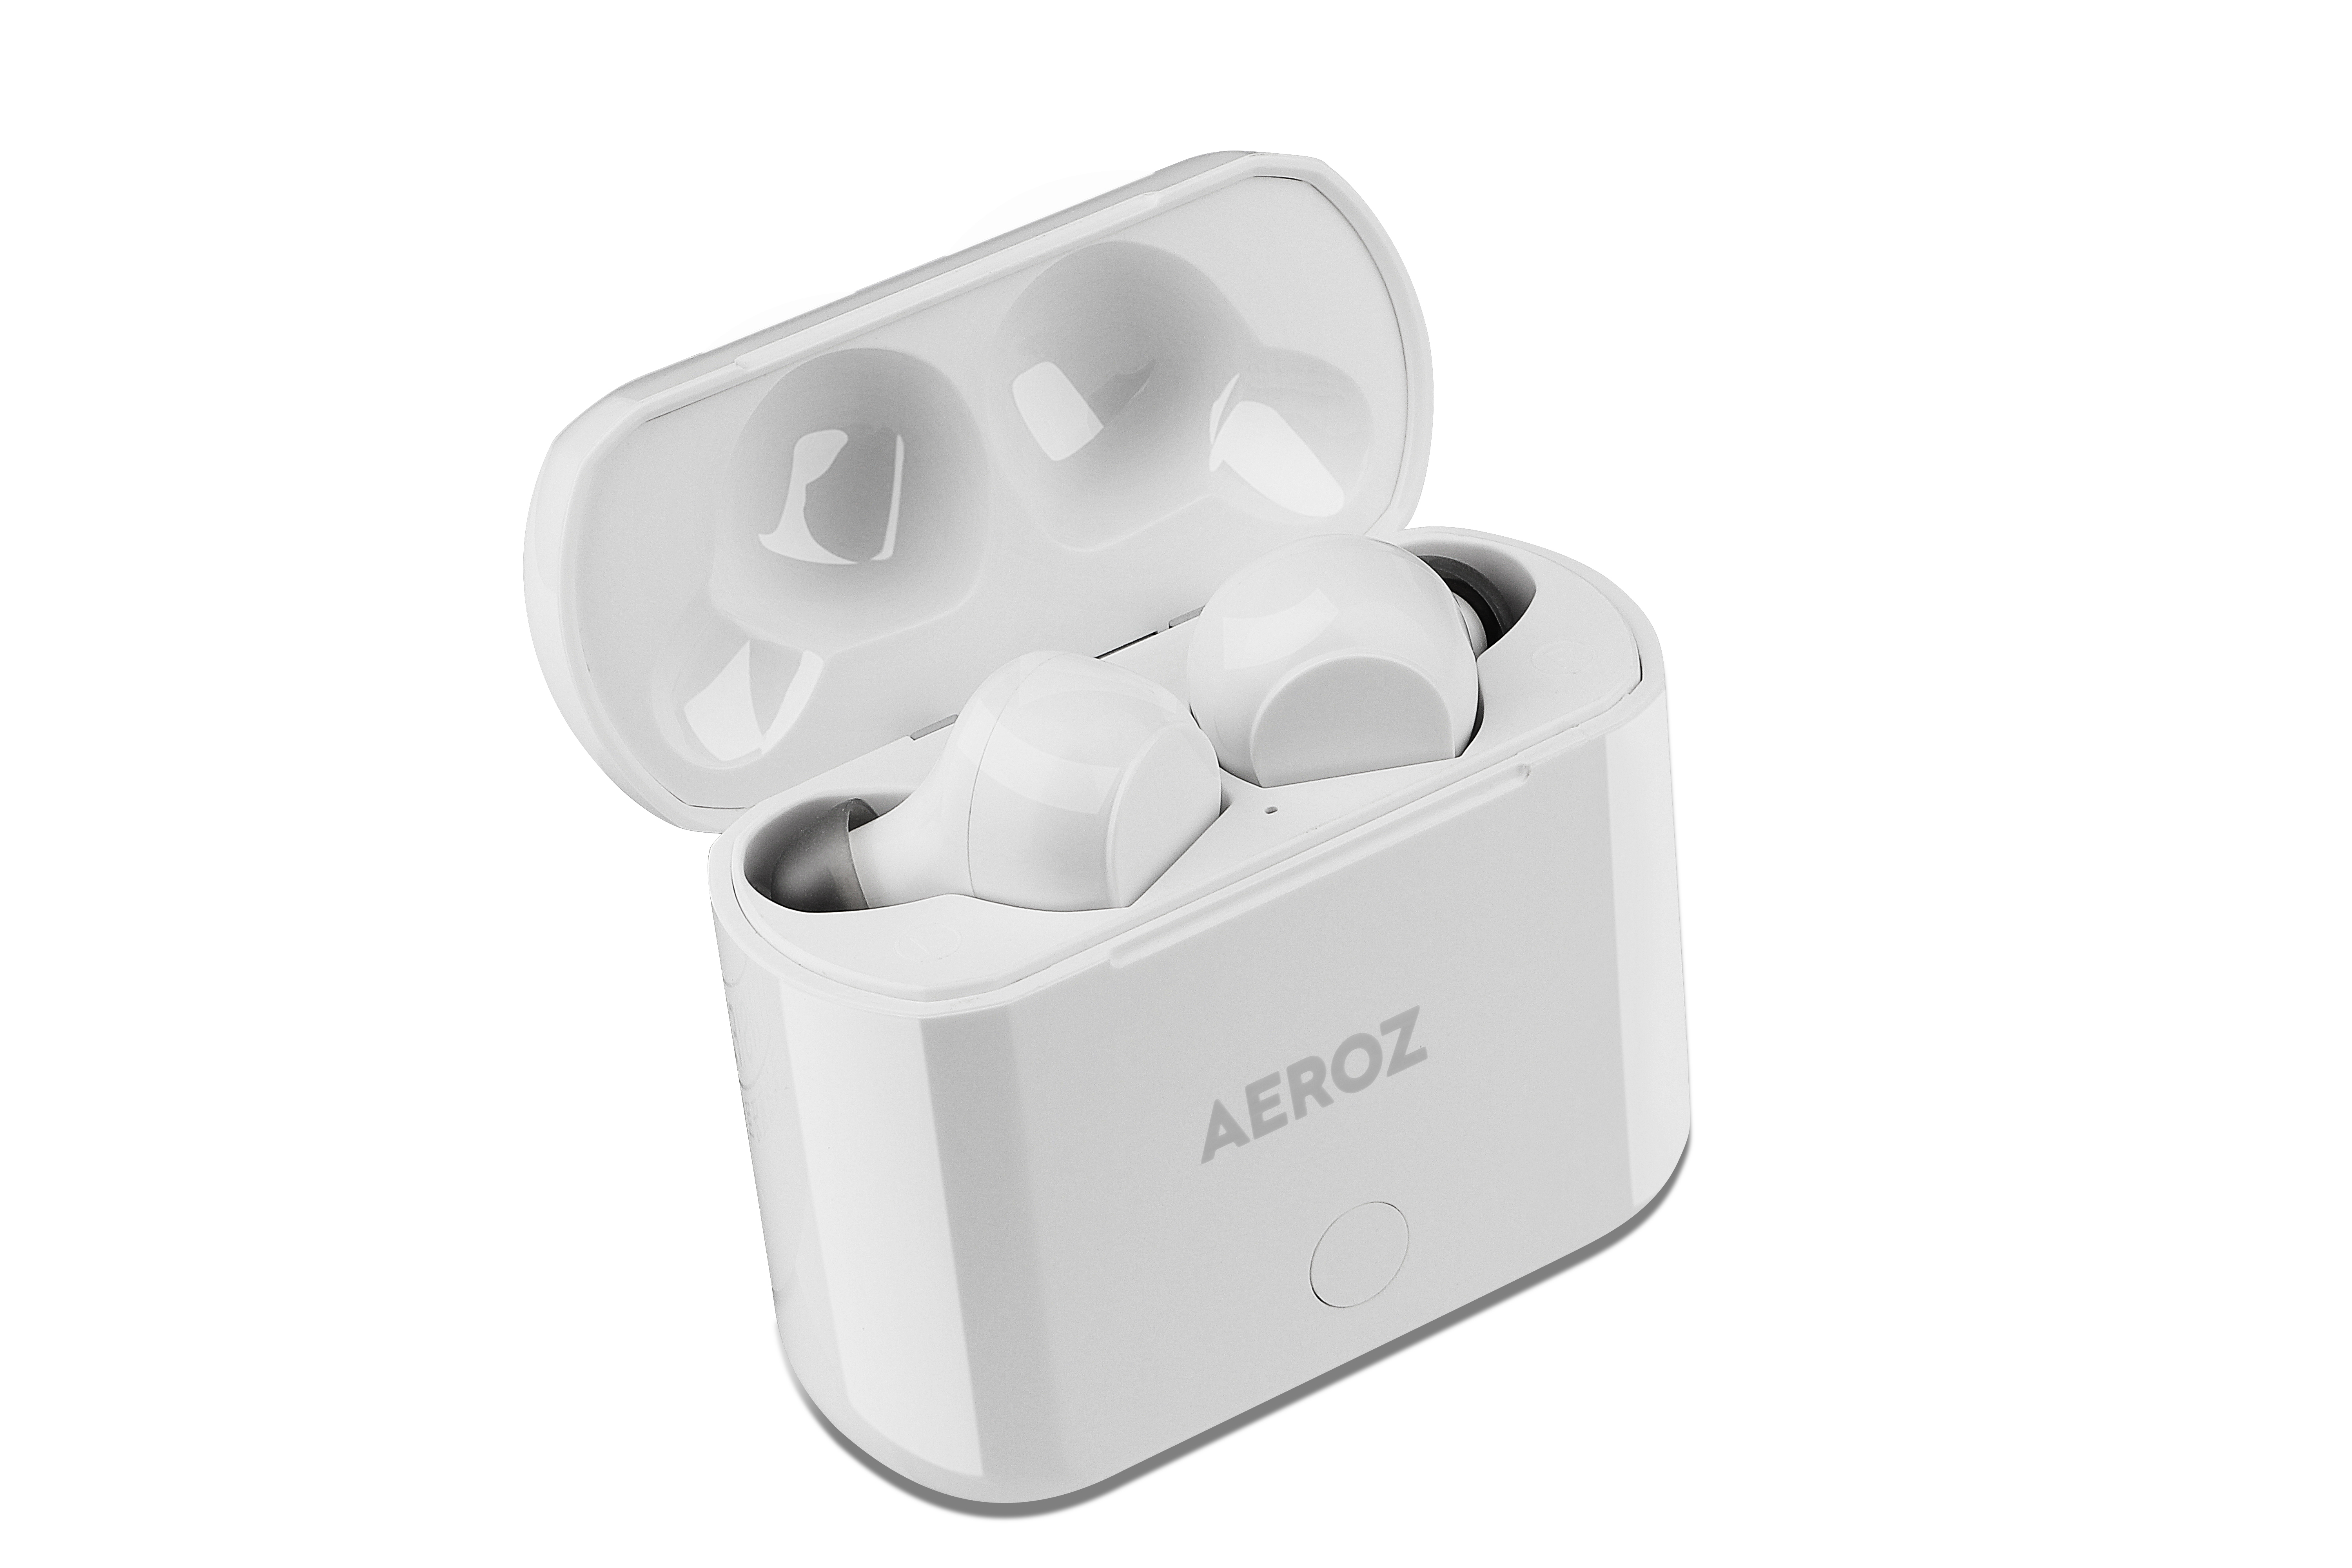 AEROZ - TWS-122 WHITE - True Wireless Stereo earbuds with charging case